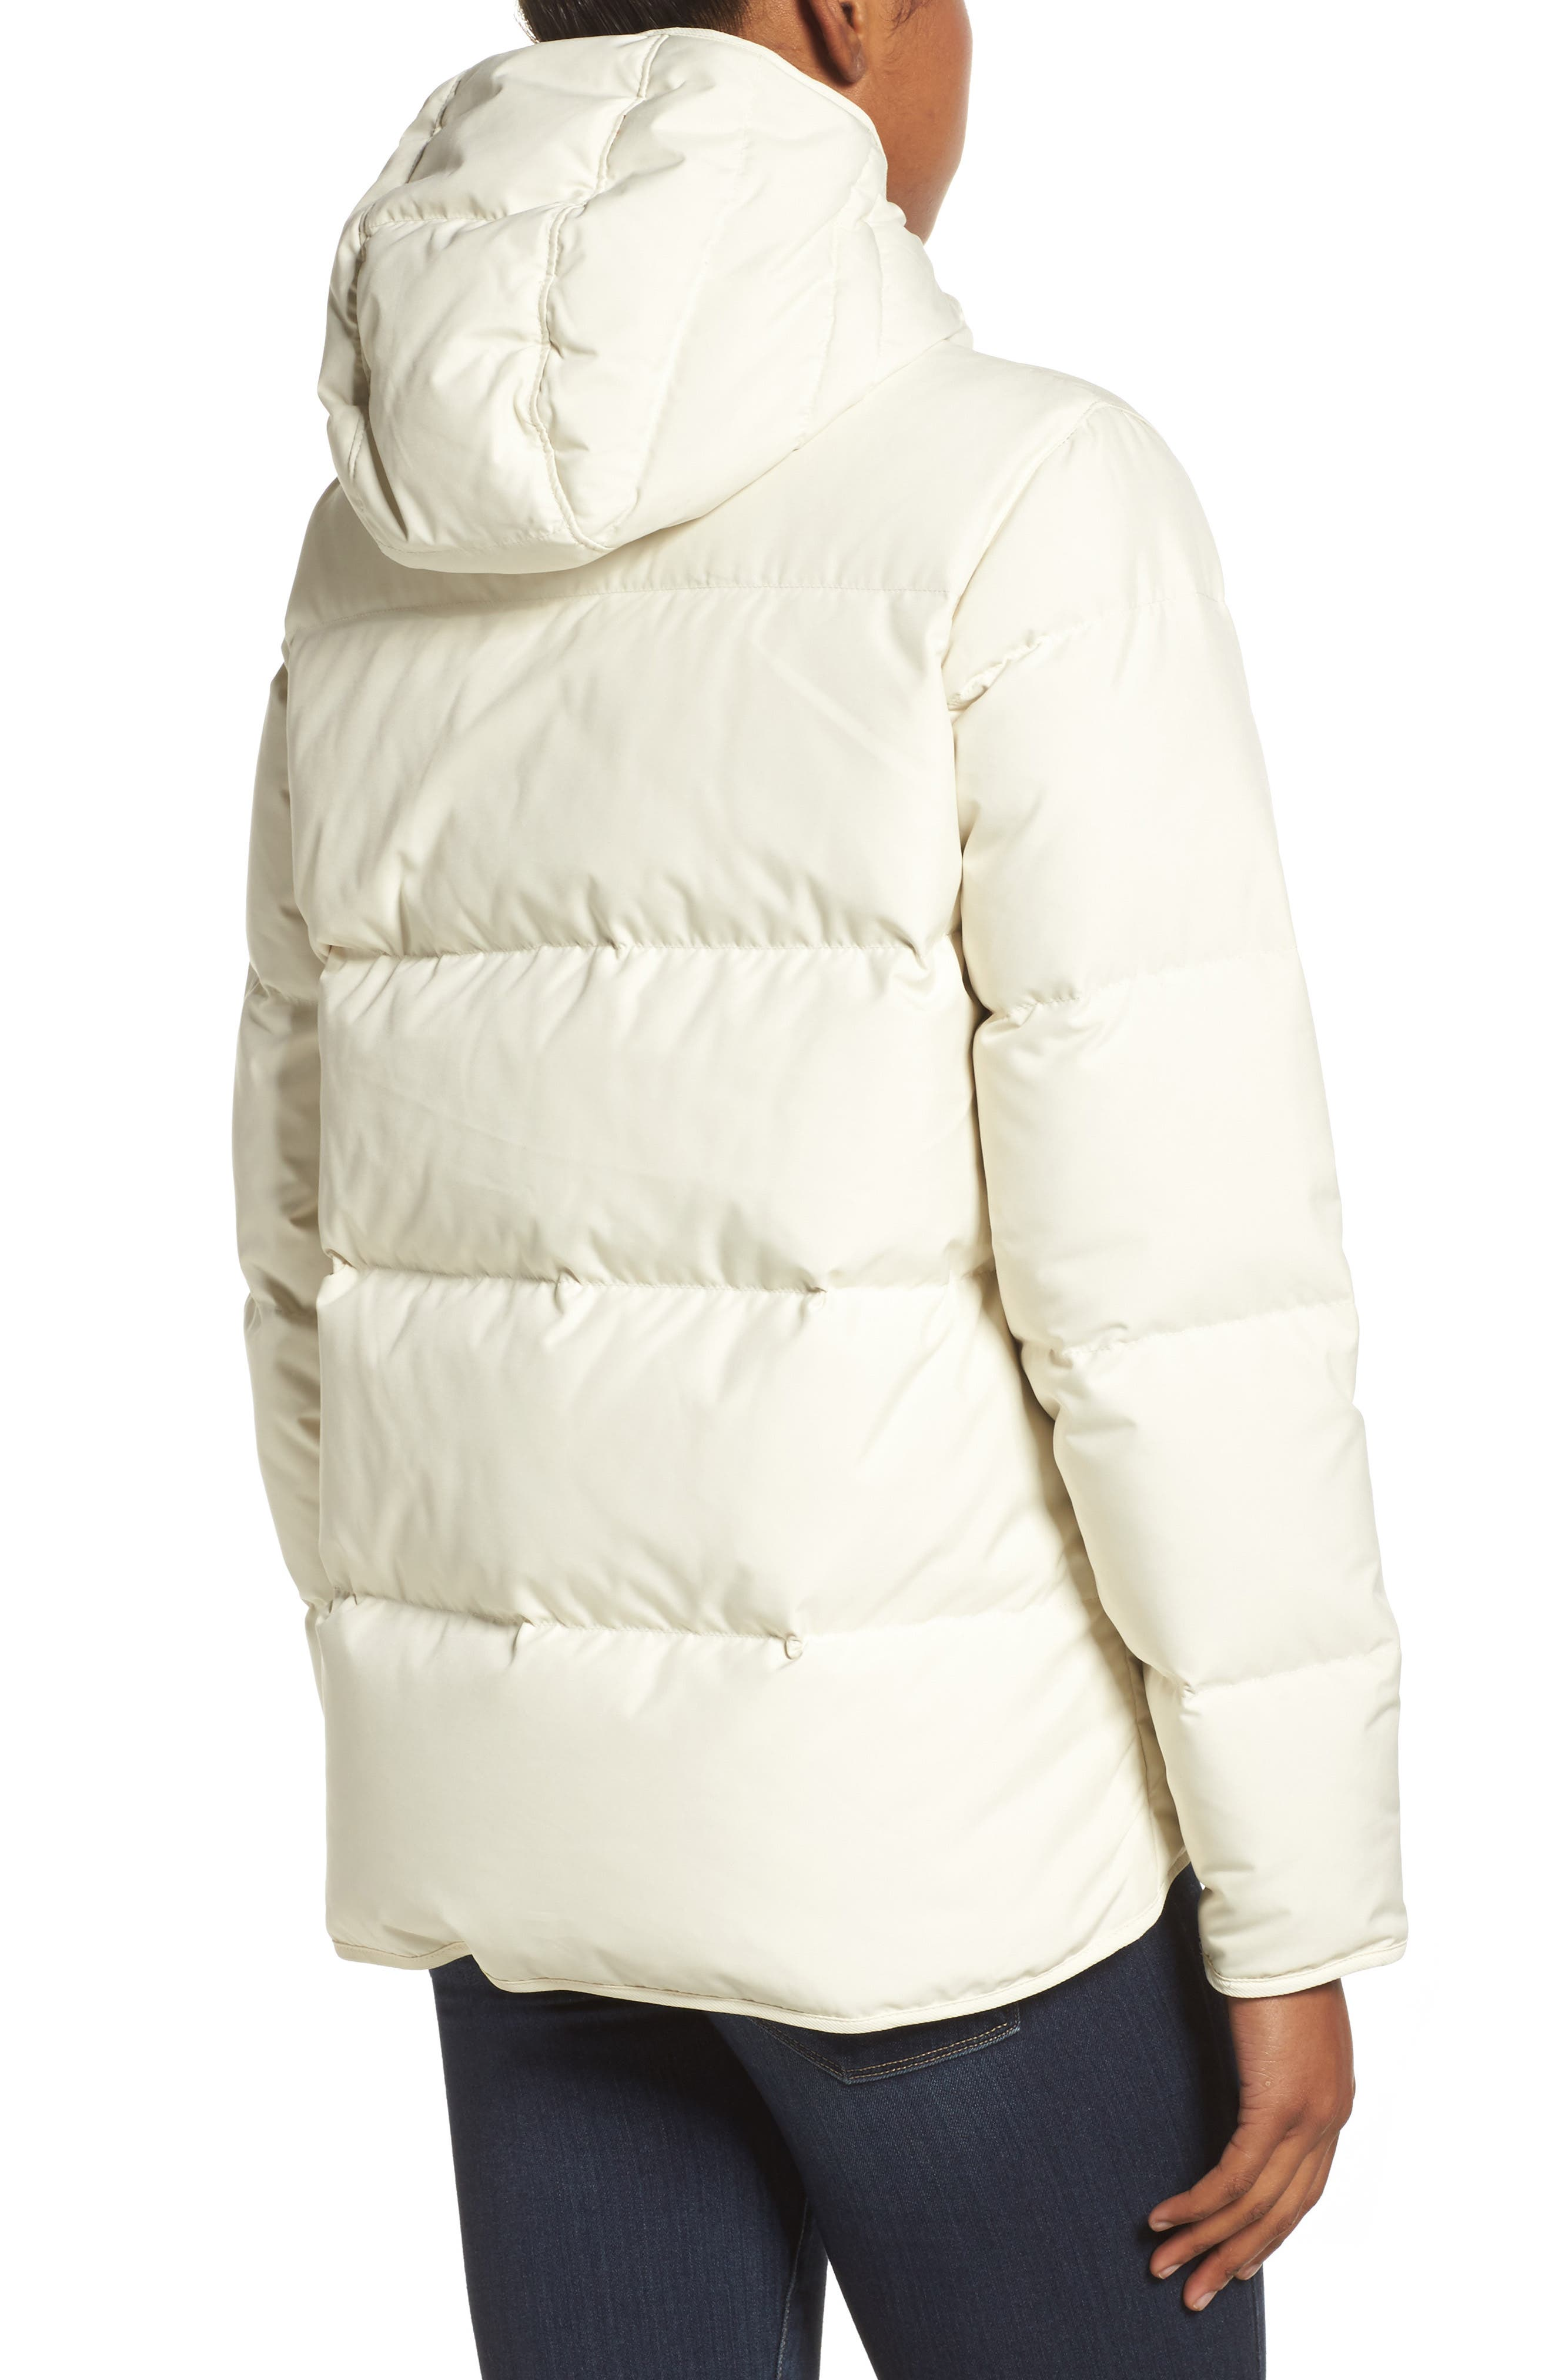 Mage Insulator Hooded Jacket,                             Alternate thumbnail 2, color,                             250